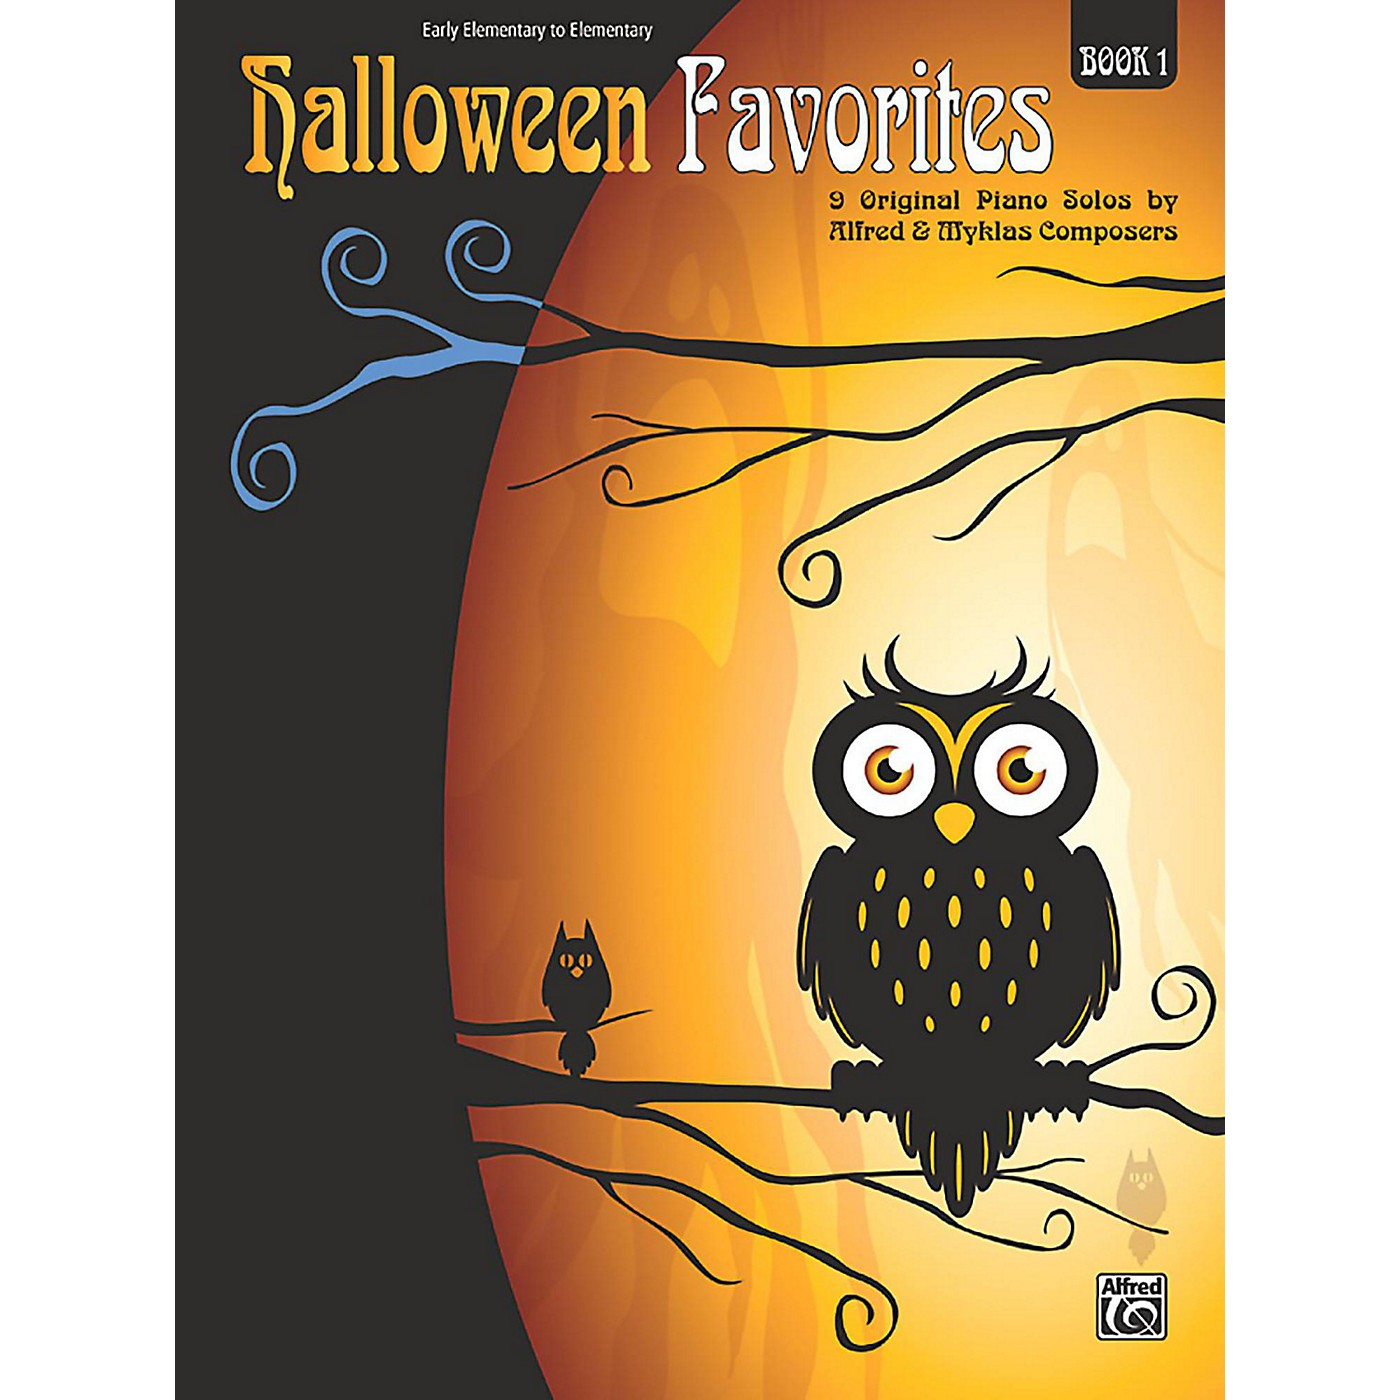 Alfred Halloween Favorites, Book 1 Early Elementary / Elementary thumbnail